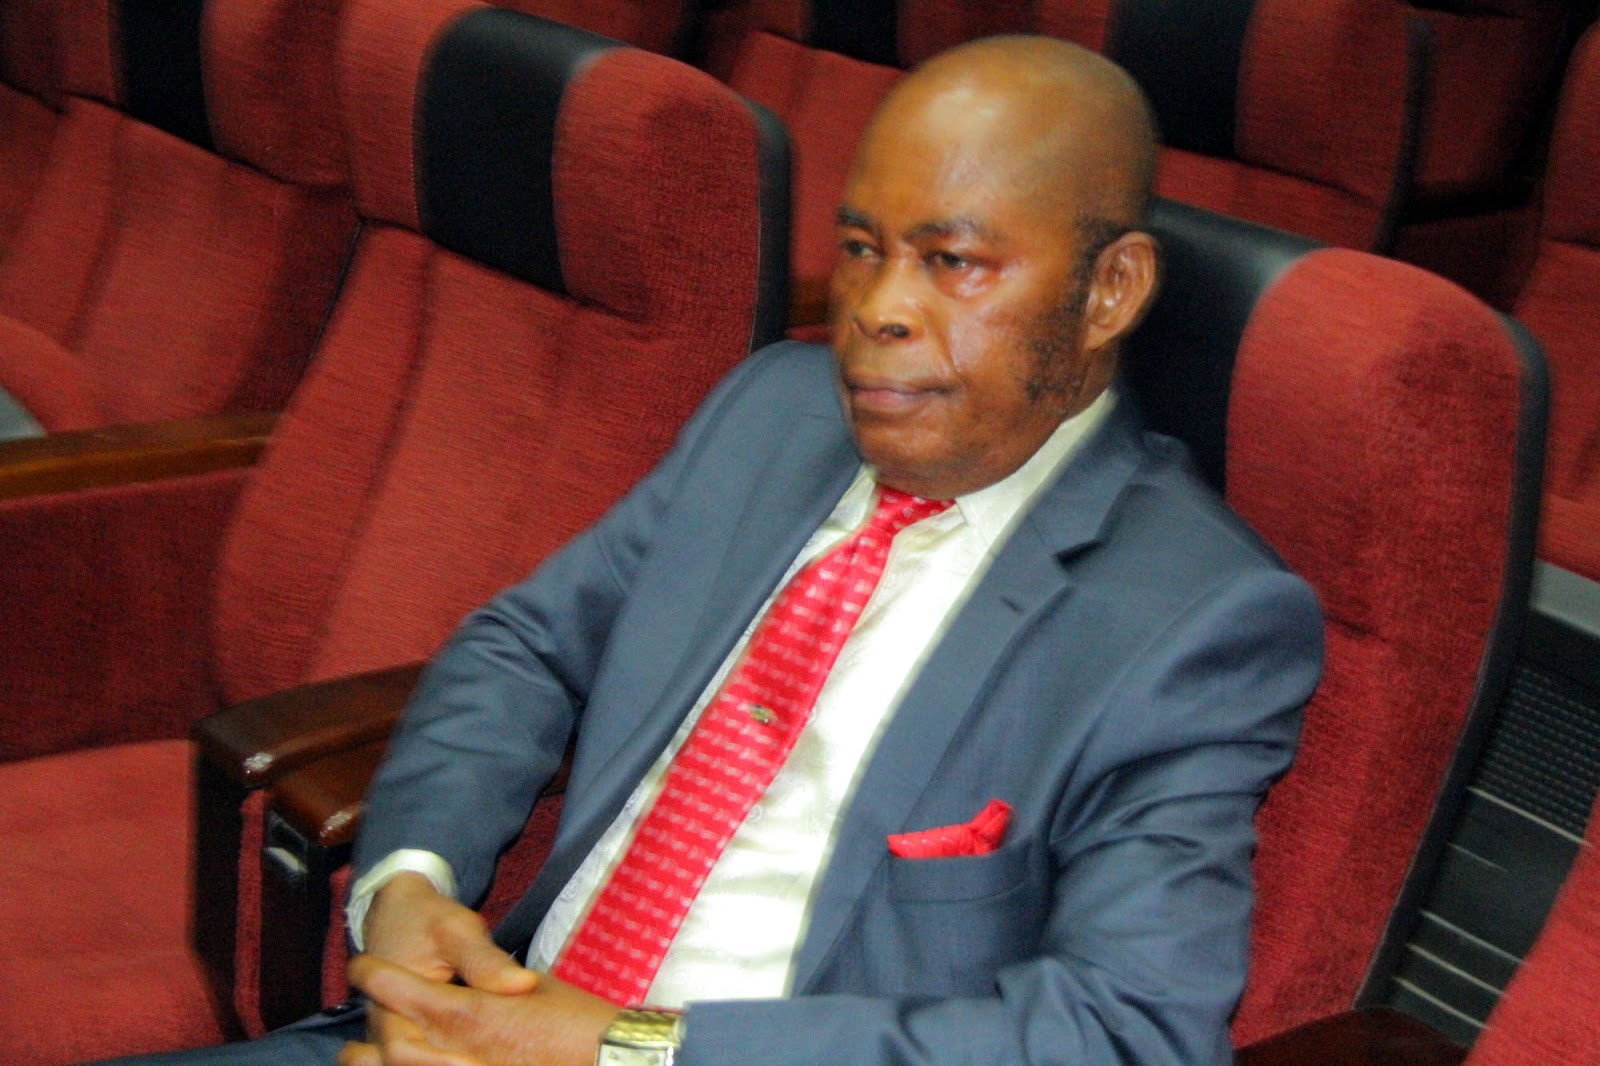 Justice Ngwuta whose house was raided by DSS in 2016, resumes duty after three years of technical suspension lindaikejisblog